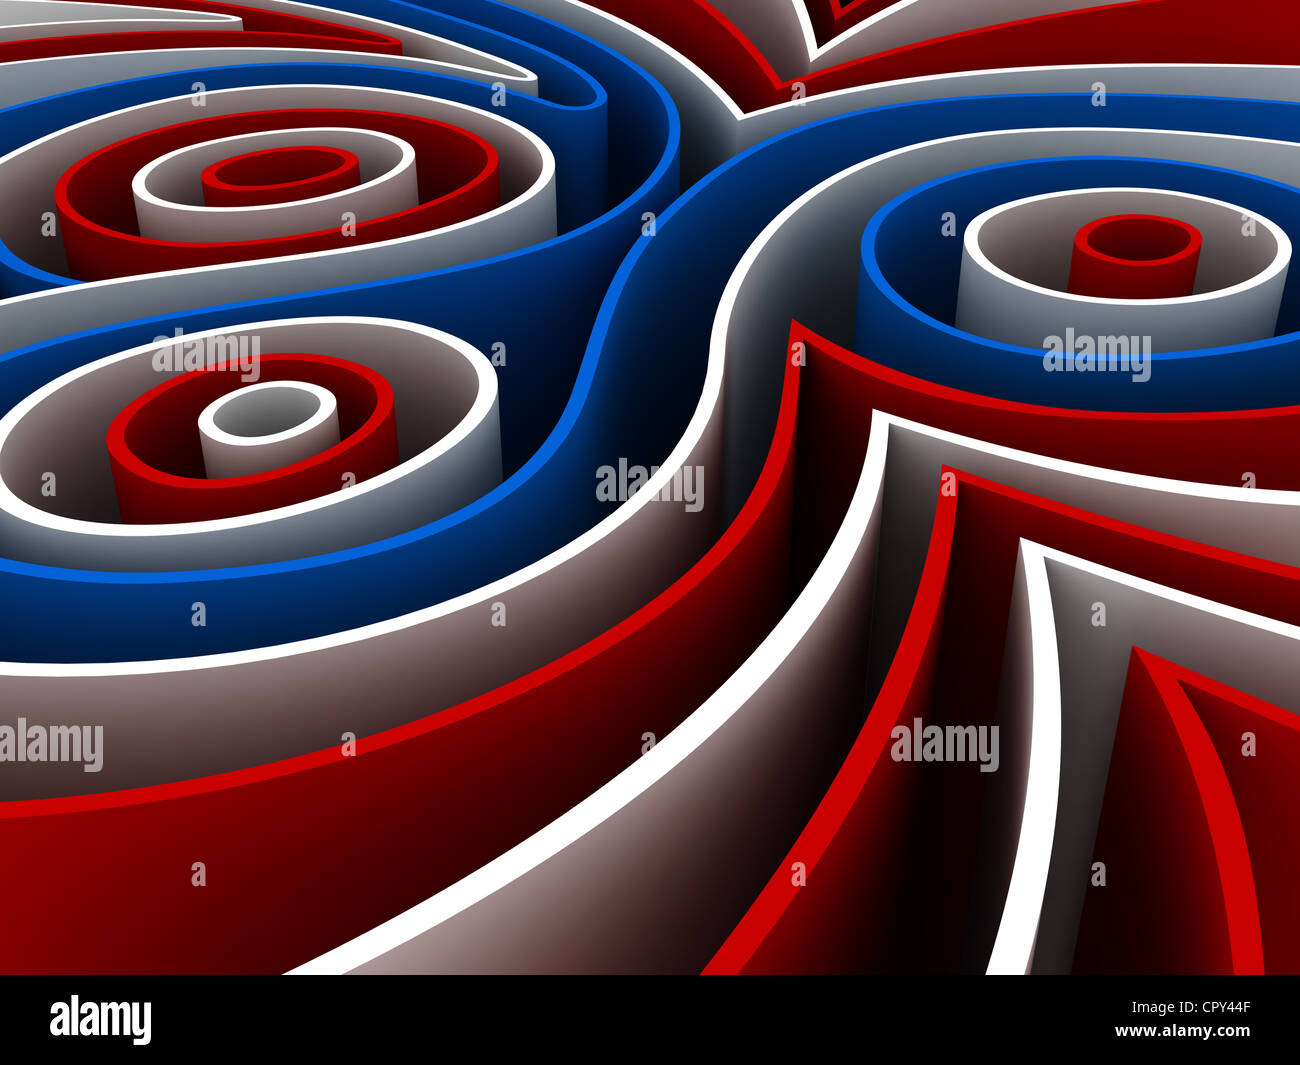 Abstract 3d render of colorful figures - Stock Image